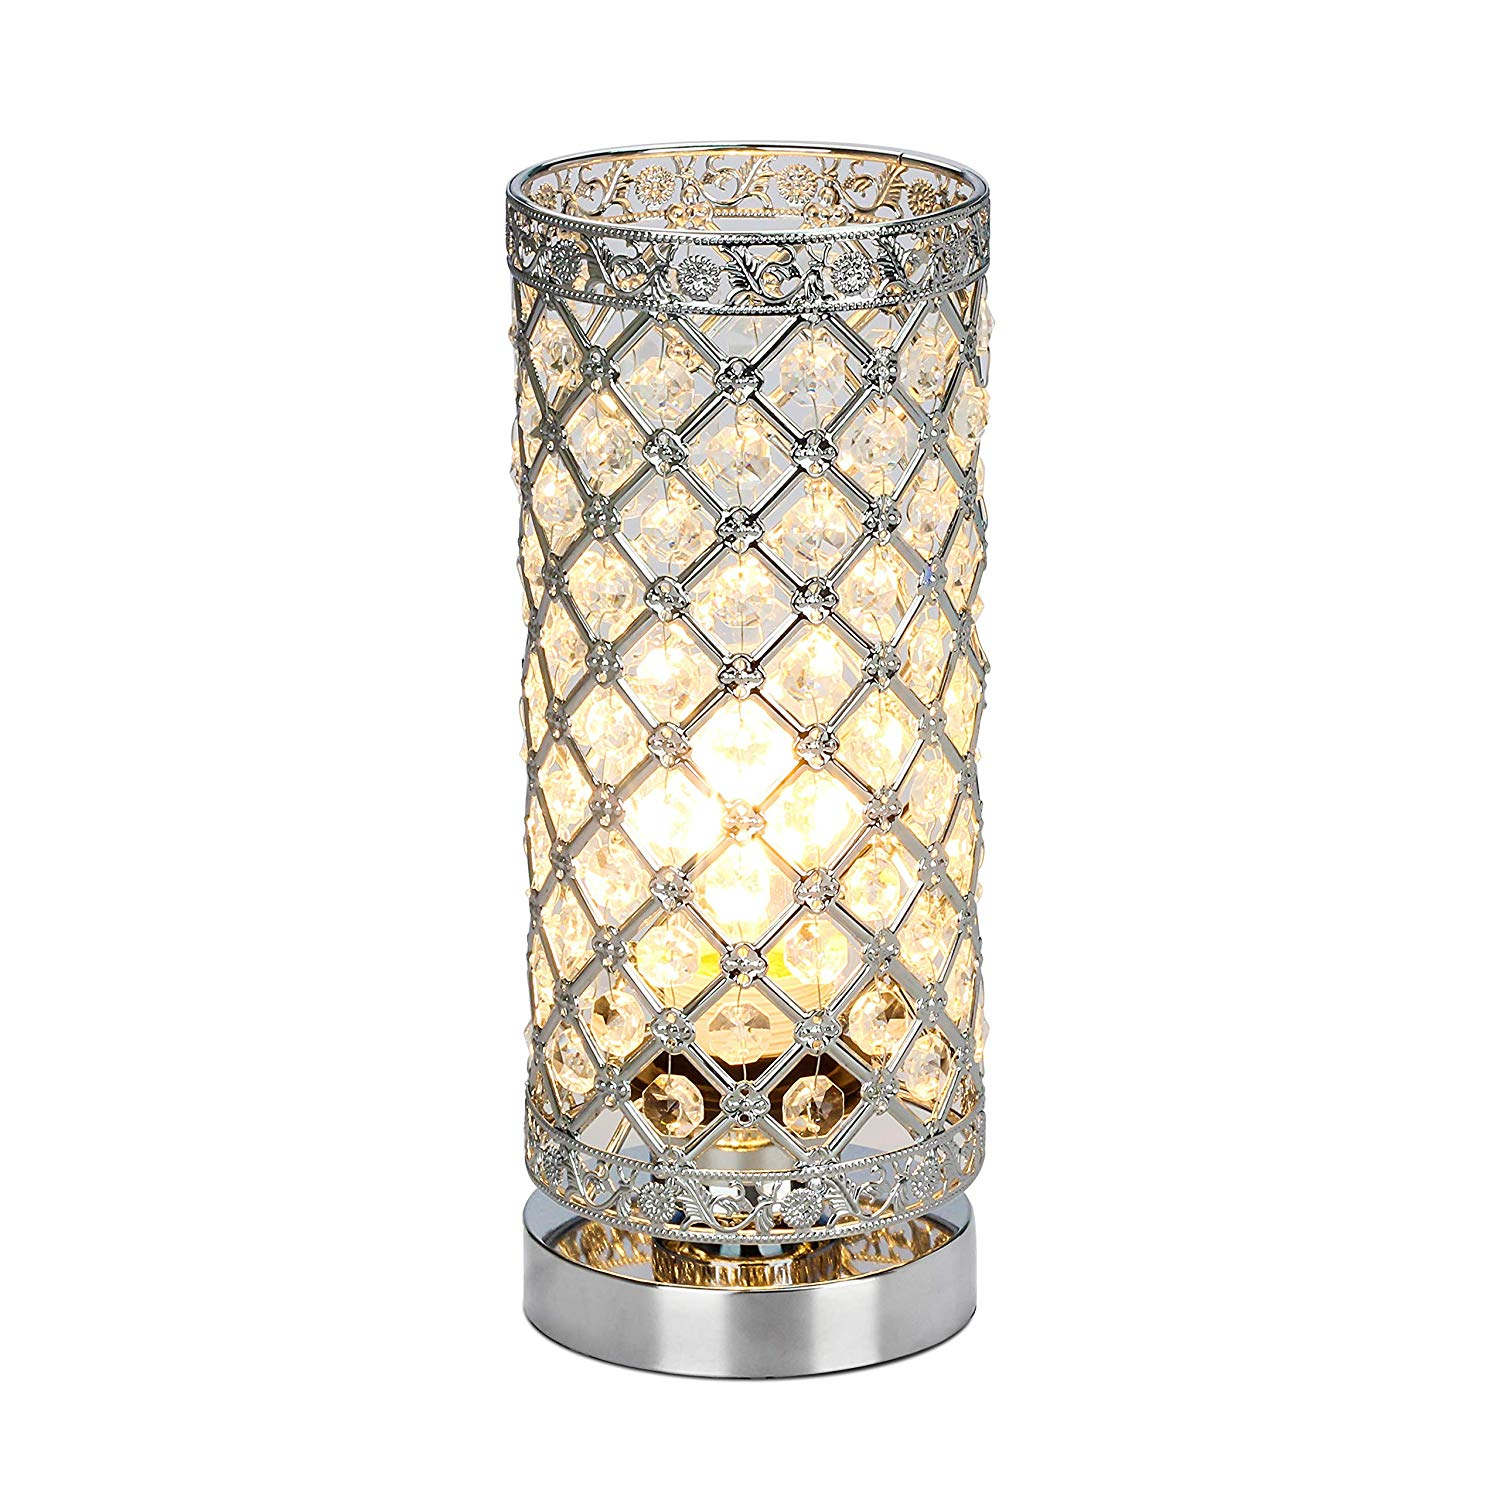 crystal table lamp touch control dimmable accent desk bedside modern lamps light with sliver shade night fixture for living room bedroom glass and brass oval coffee garden chairs